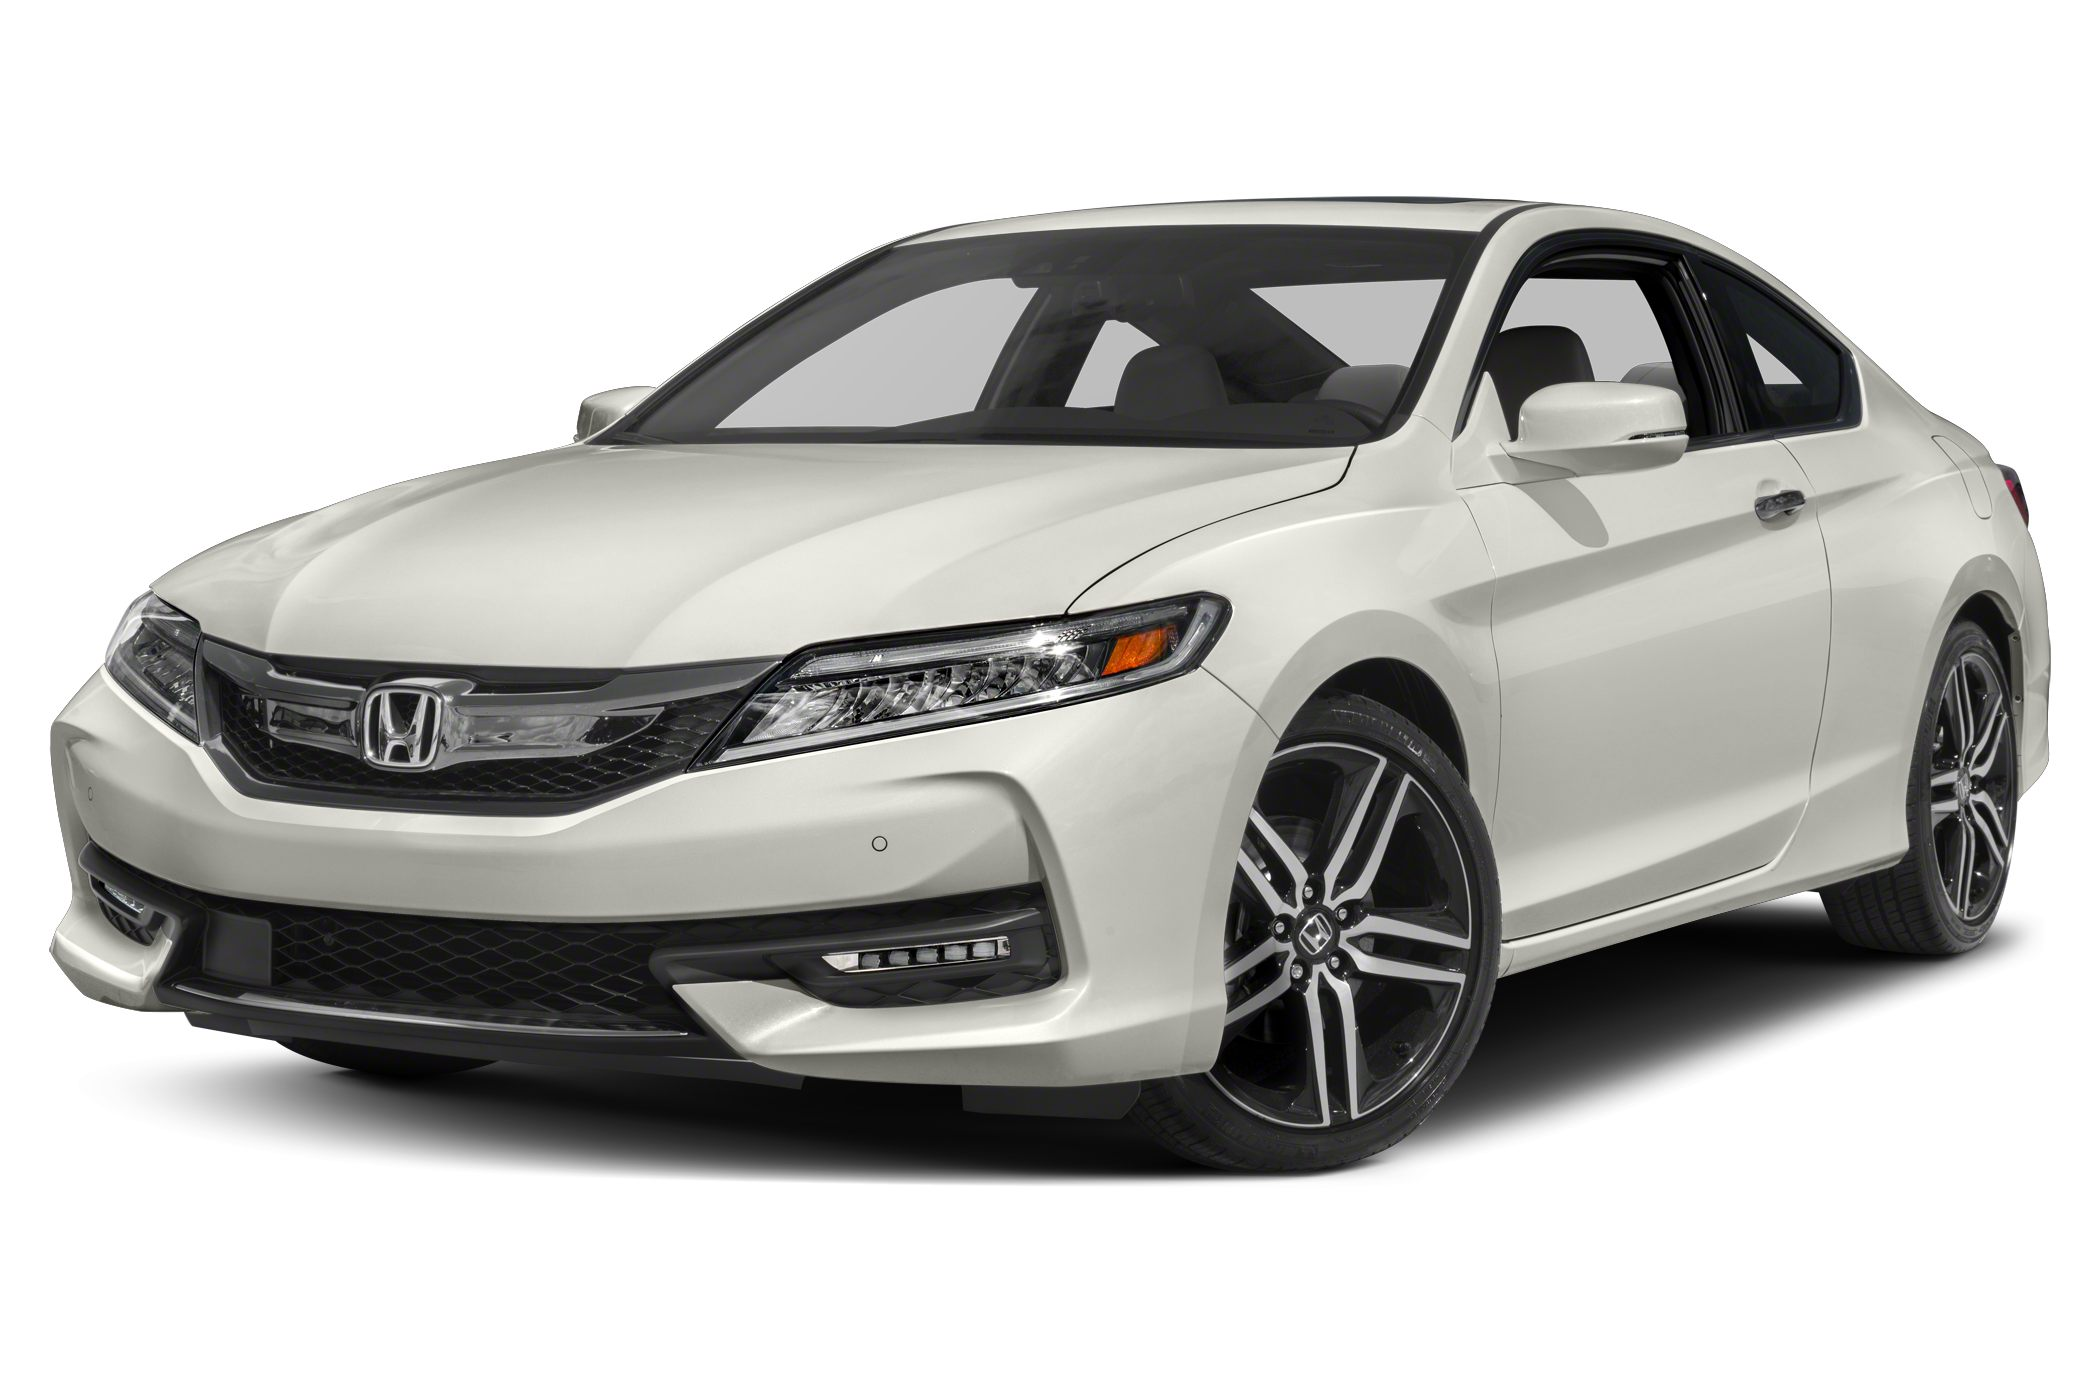 2017 Honda Accord Touring V6 2dr Coupe